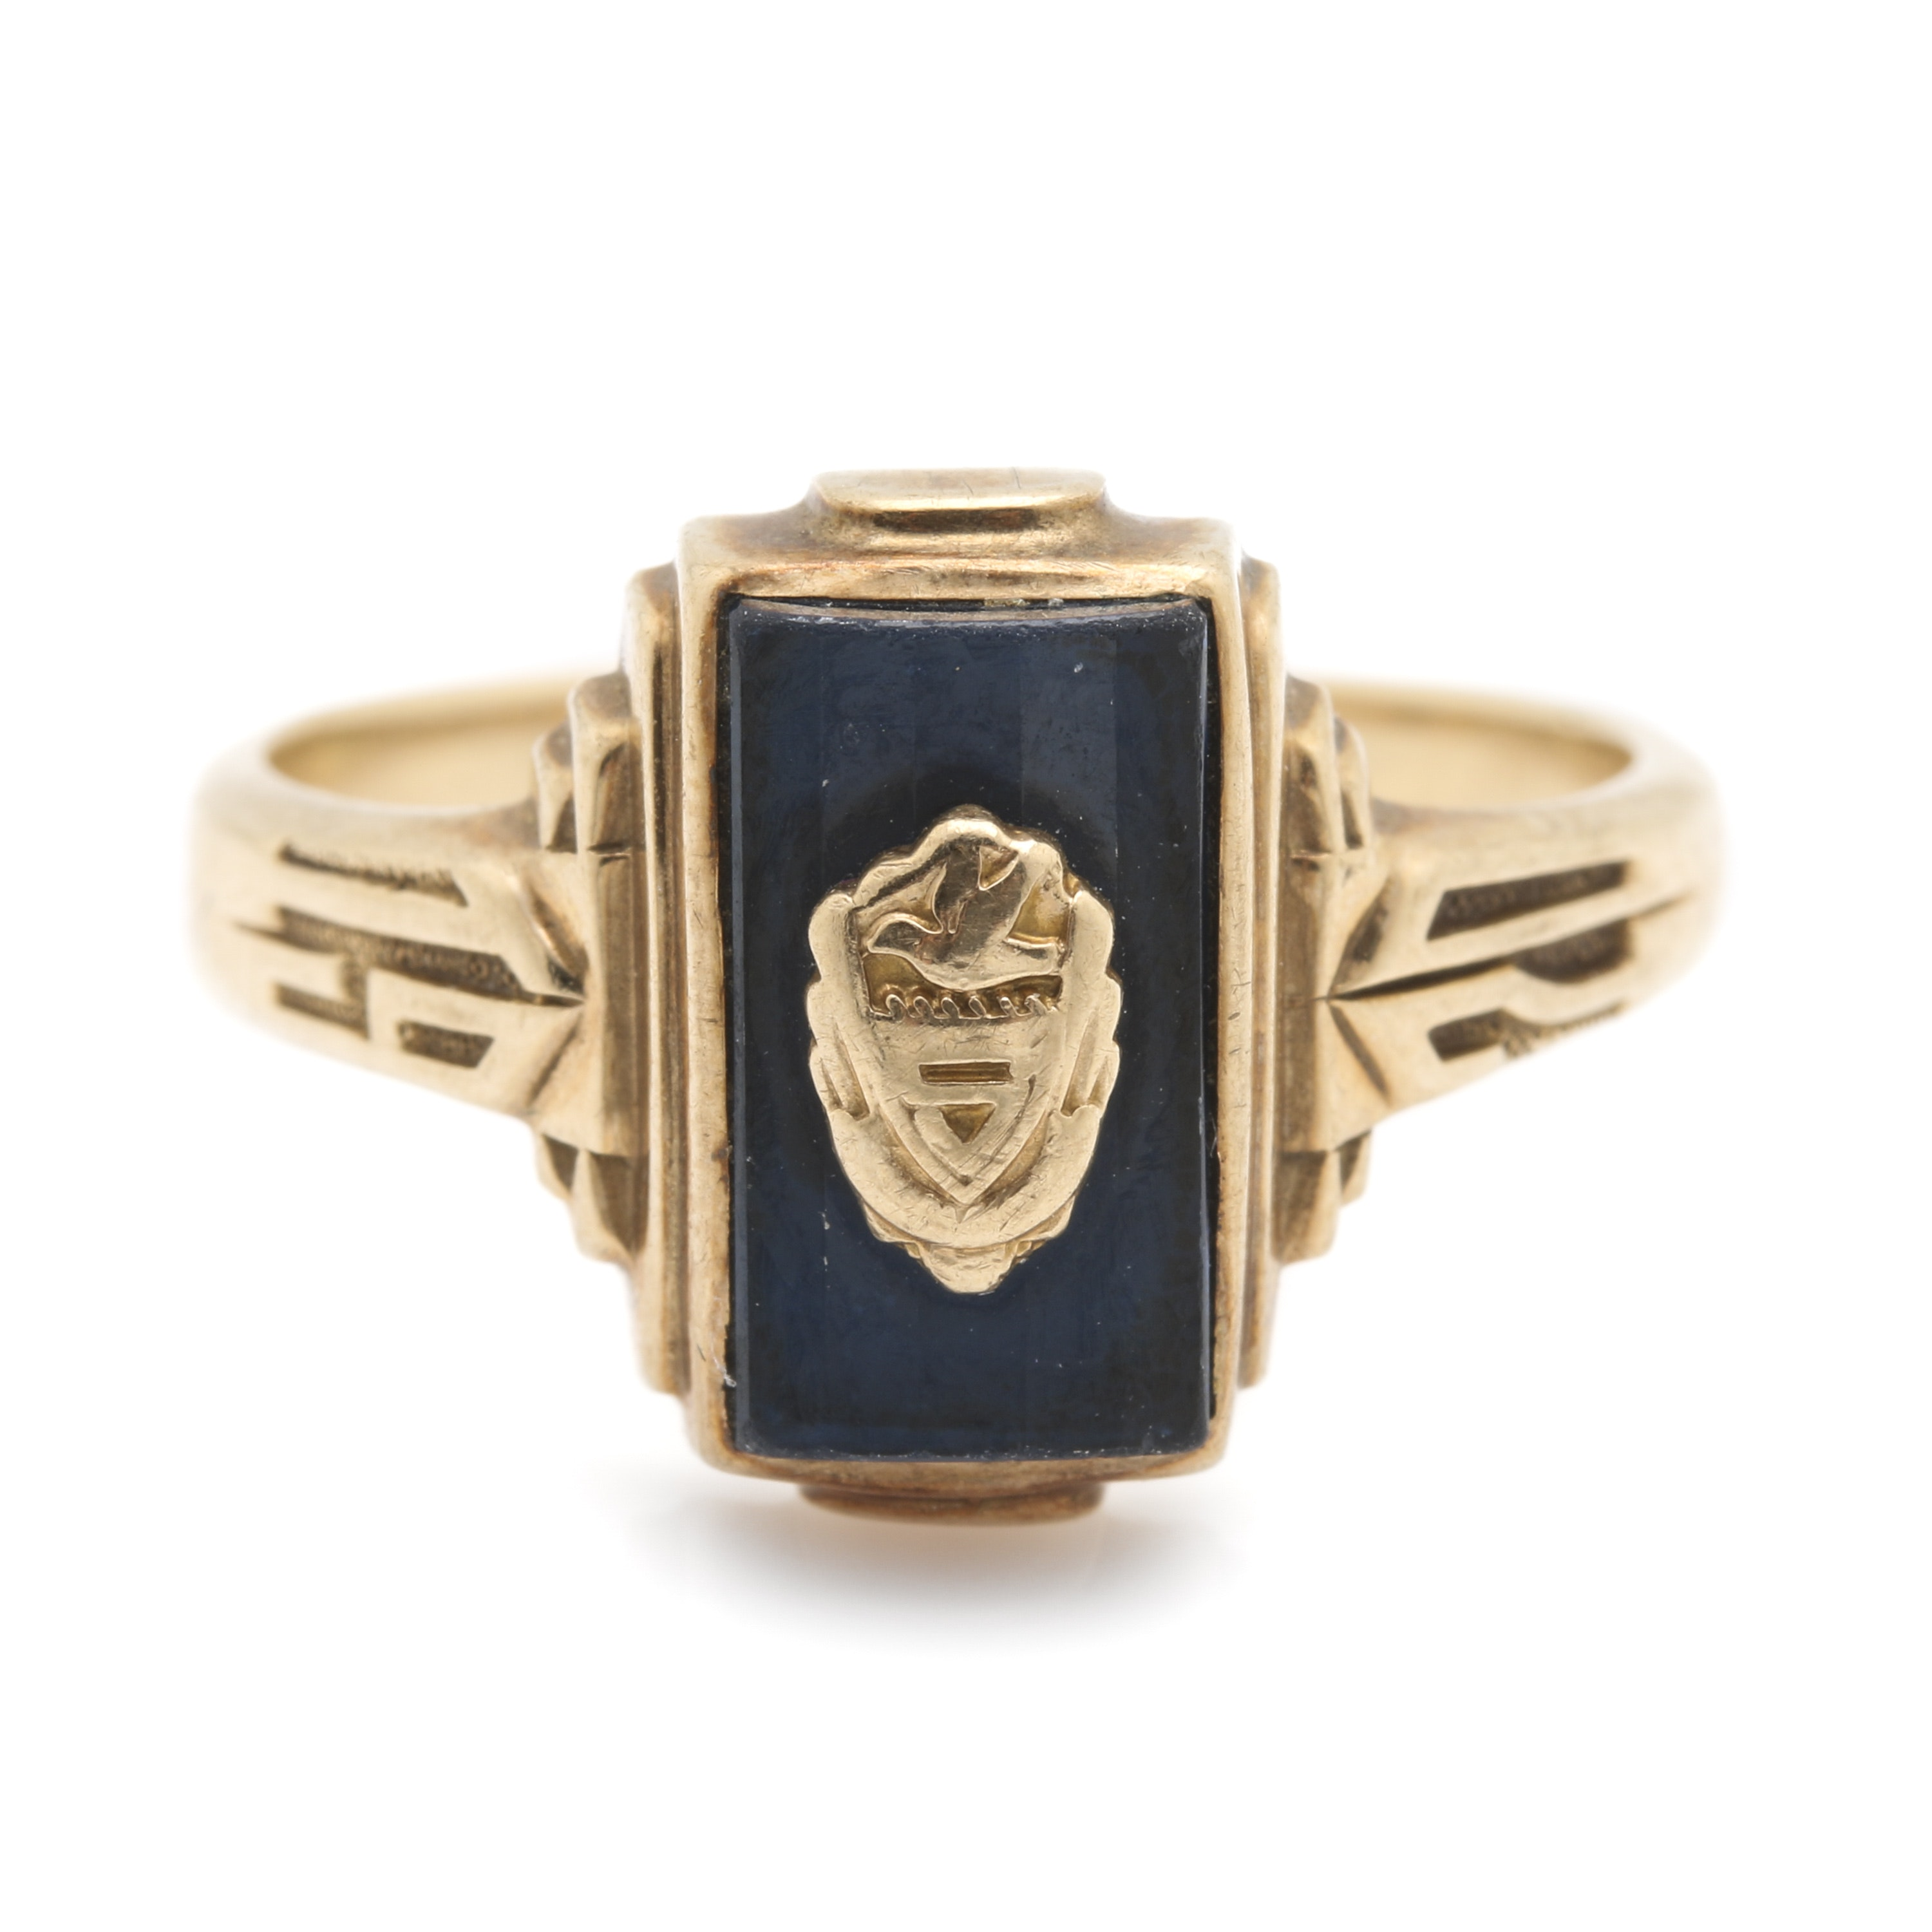 Jostens 10K Yellow Gold Spinel Class Ring